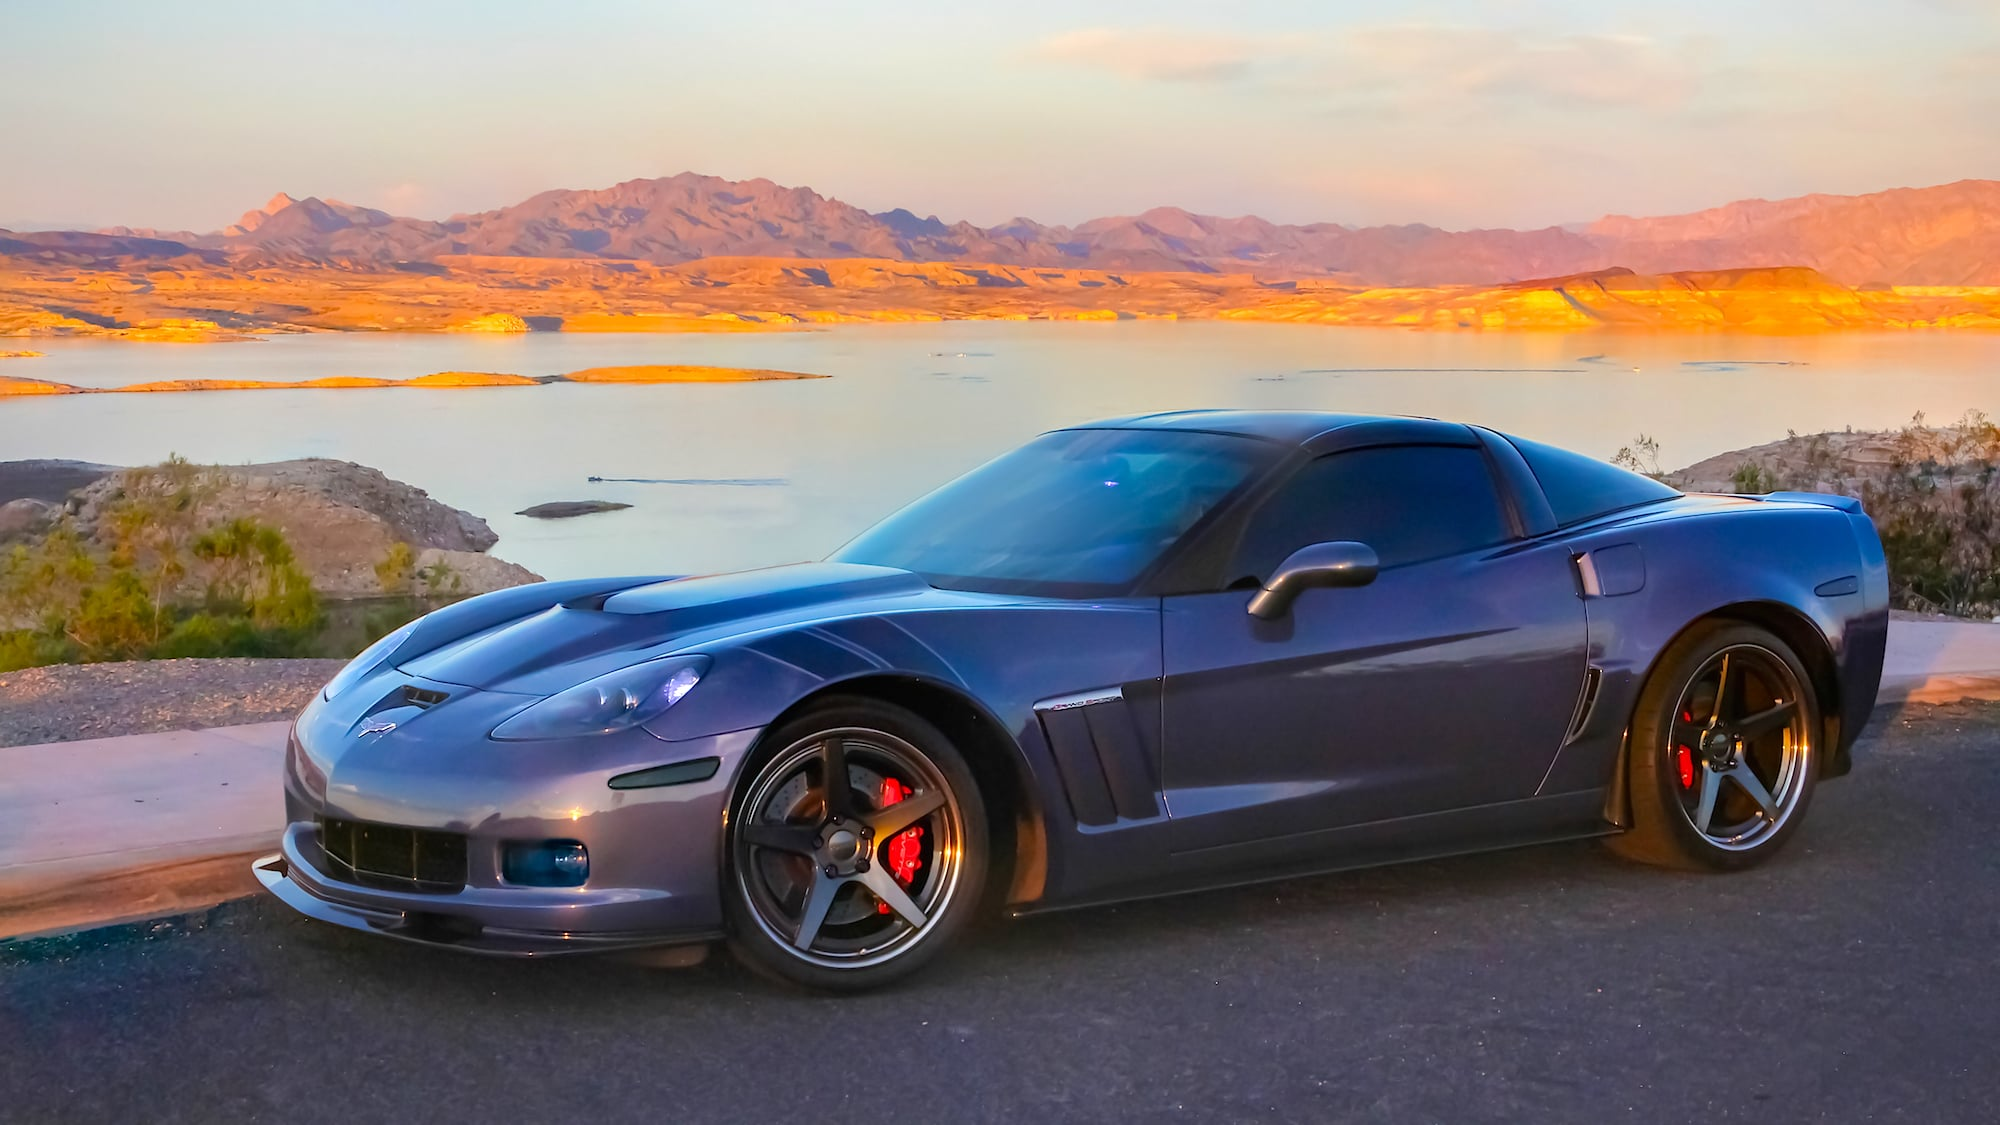 Sports Car Wallpapers High Resolution 34 Chevrolet Corvette C6 Z06 Wallpapers Hd